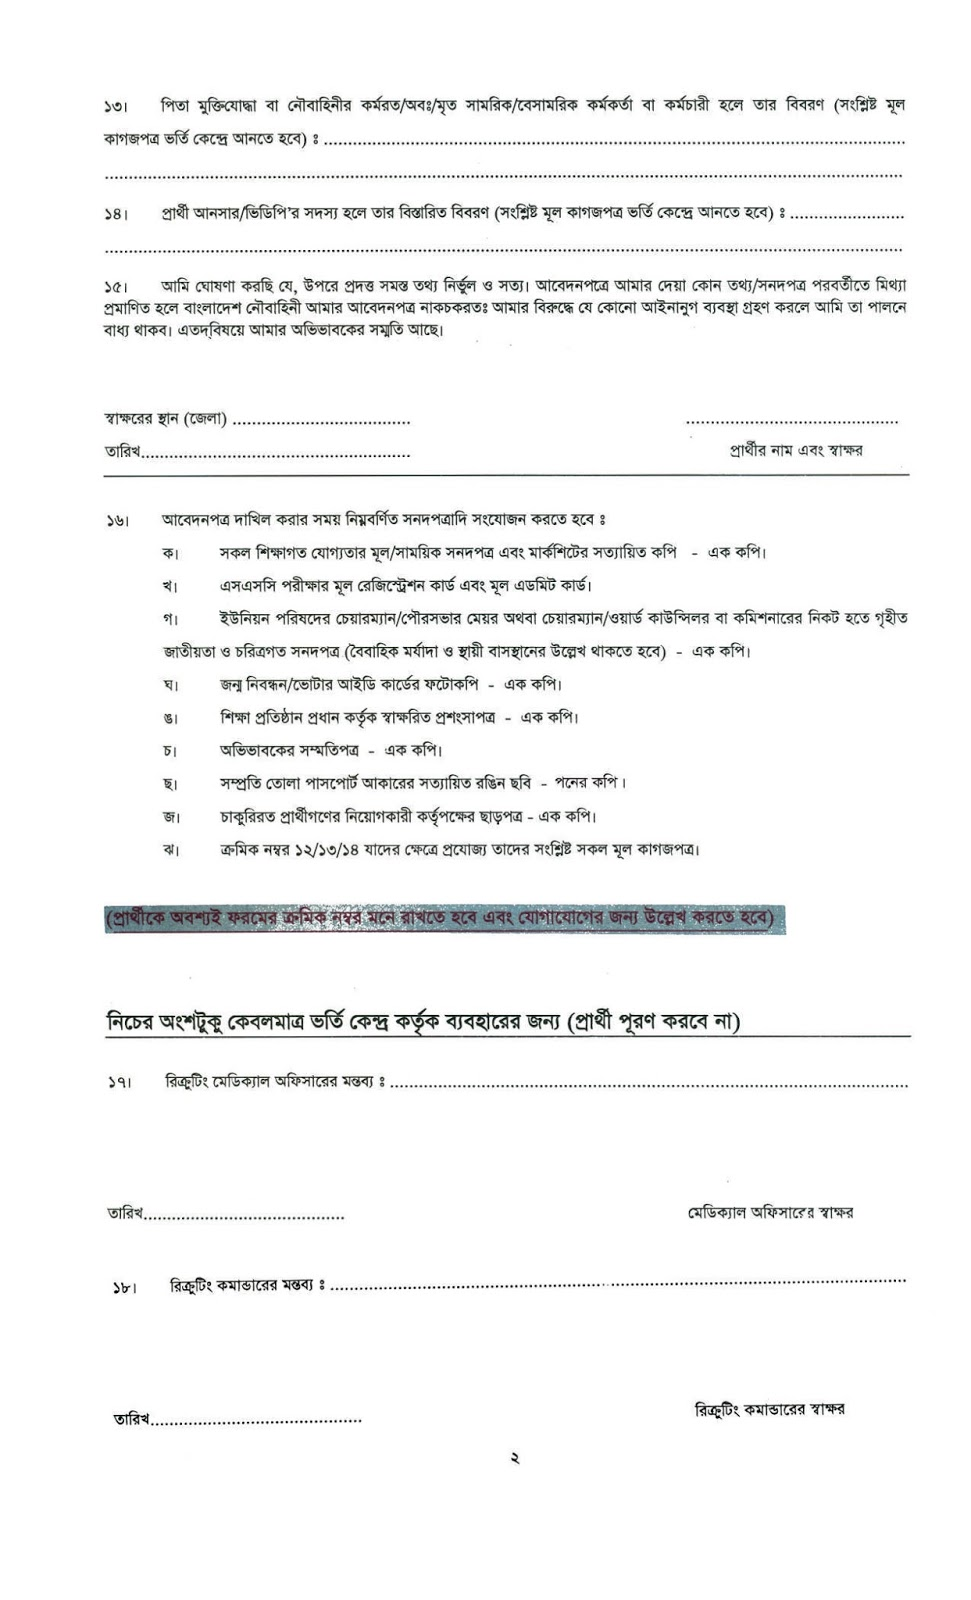 Bangladesh Navy Sailor and Special Entry Probationary Artificer Application Form